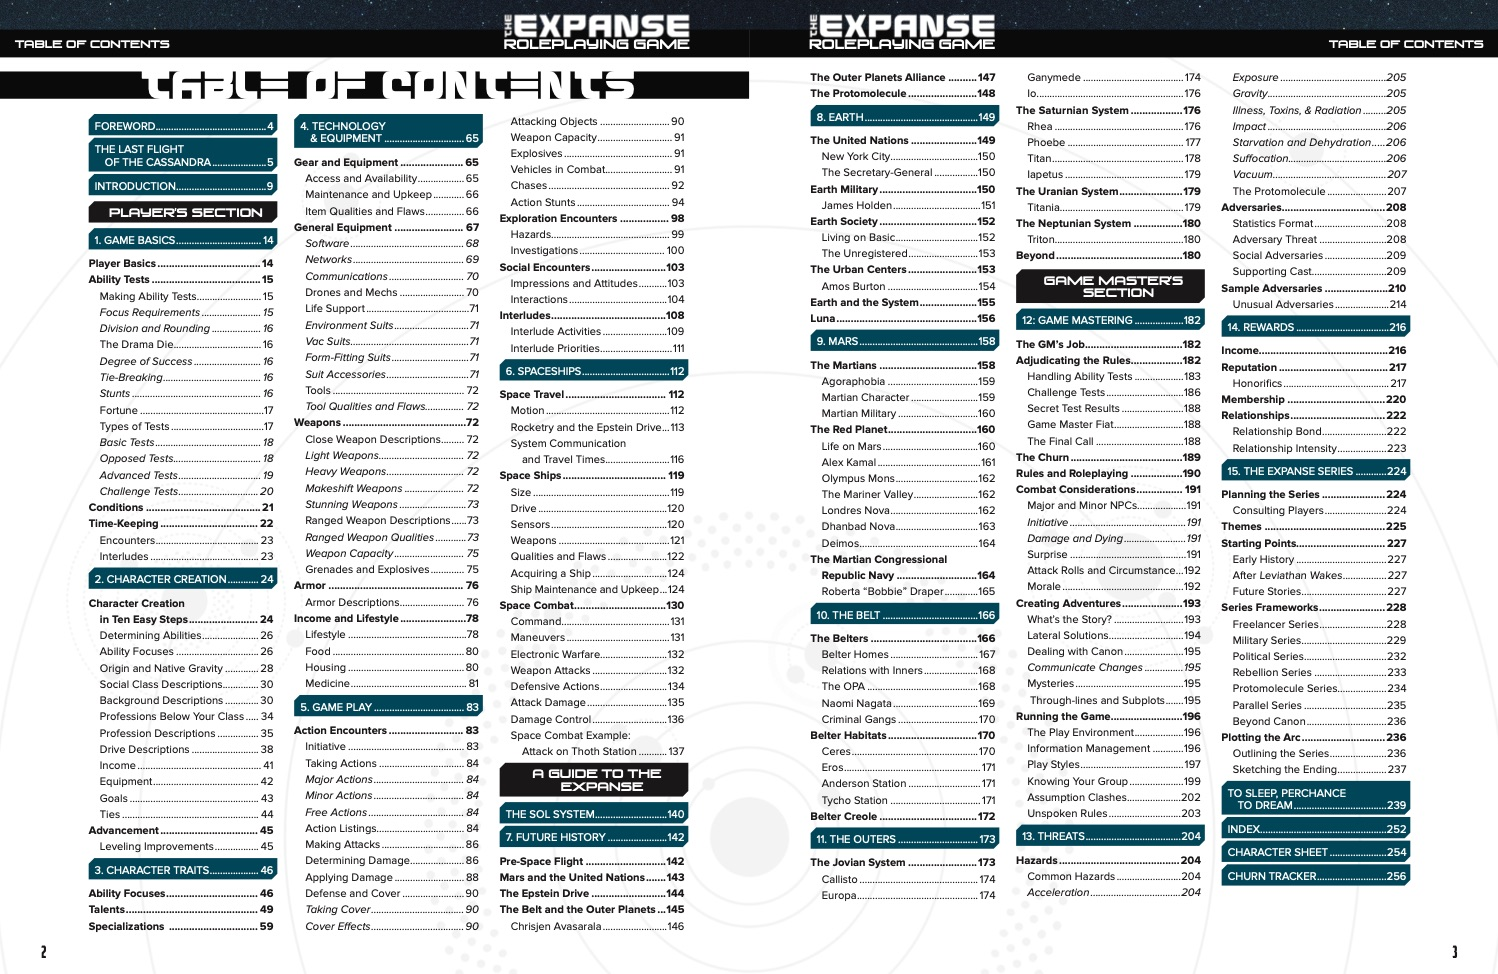 The Expanse Roleplaying Game Table of Contents image